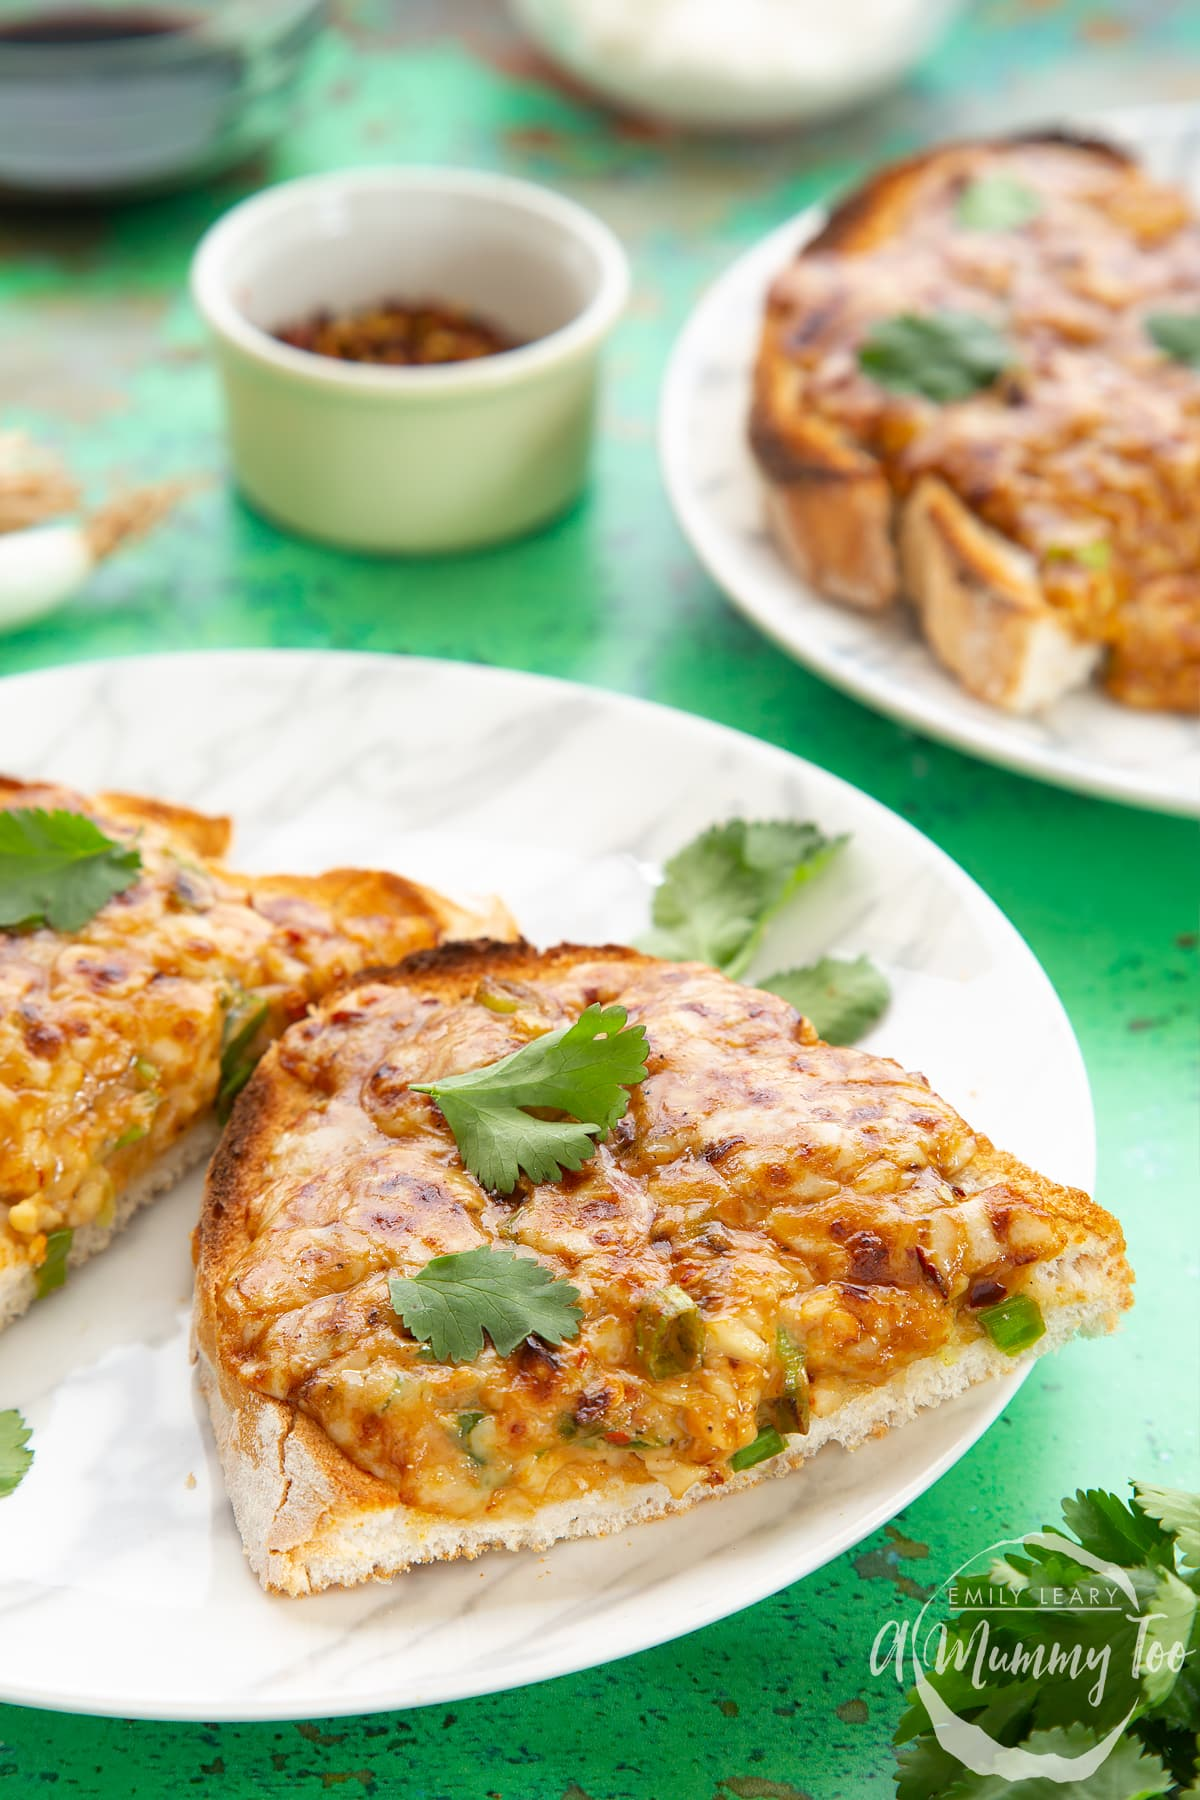 Two pieces of chilli cheese toast  on a white marbled plate, scattered with coriander.